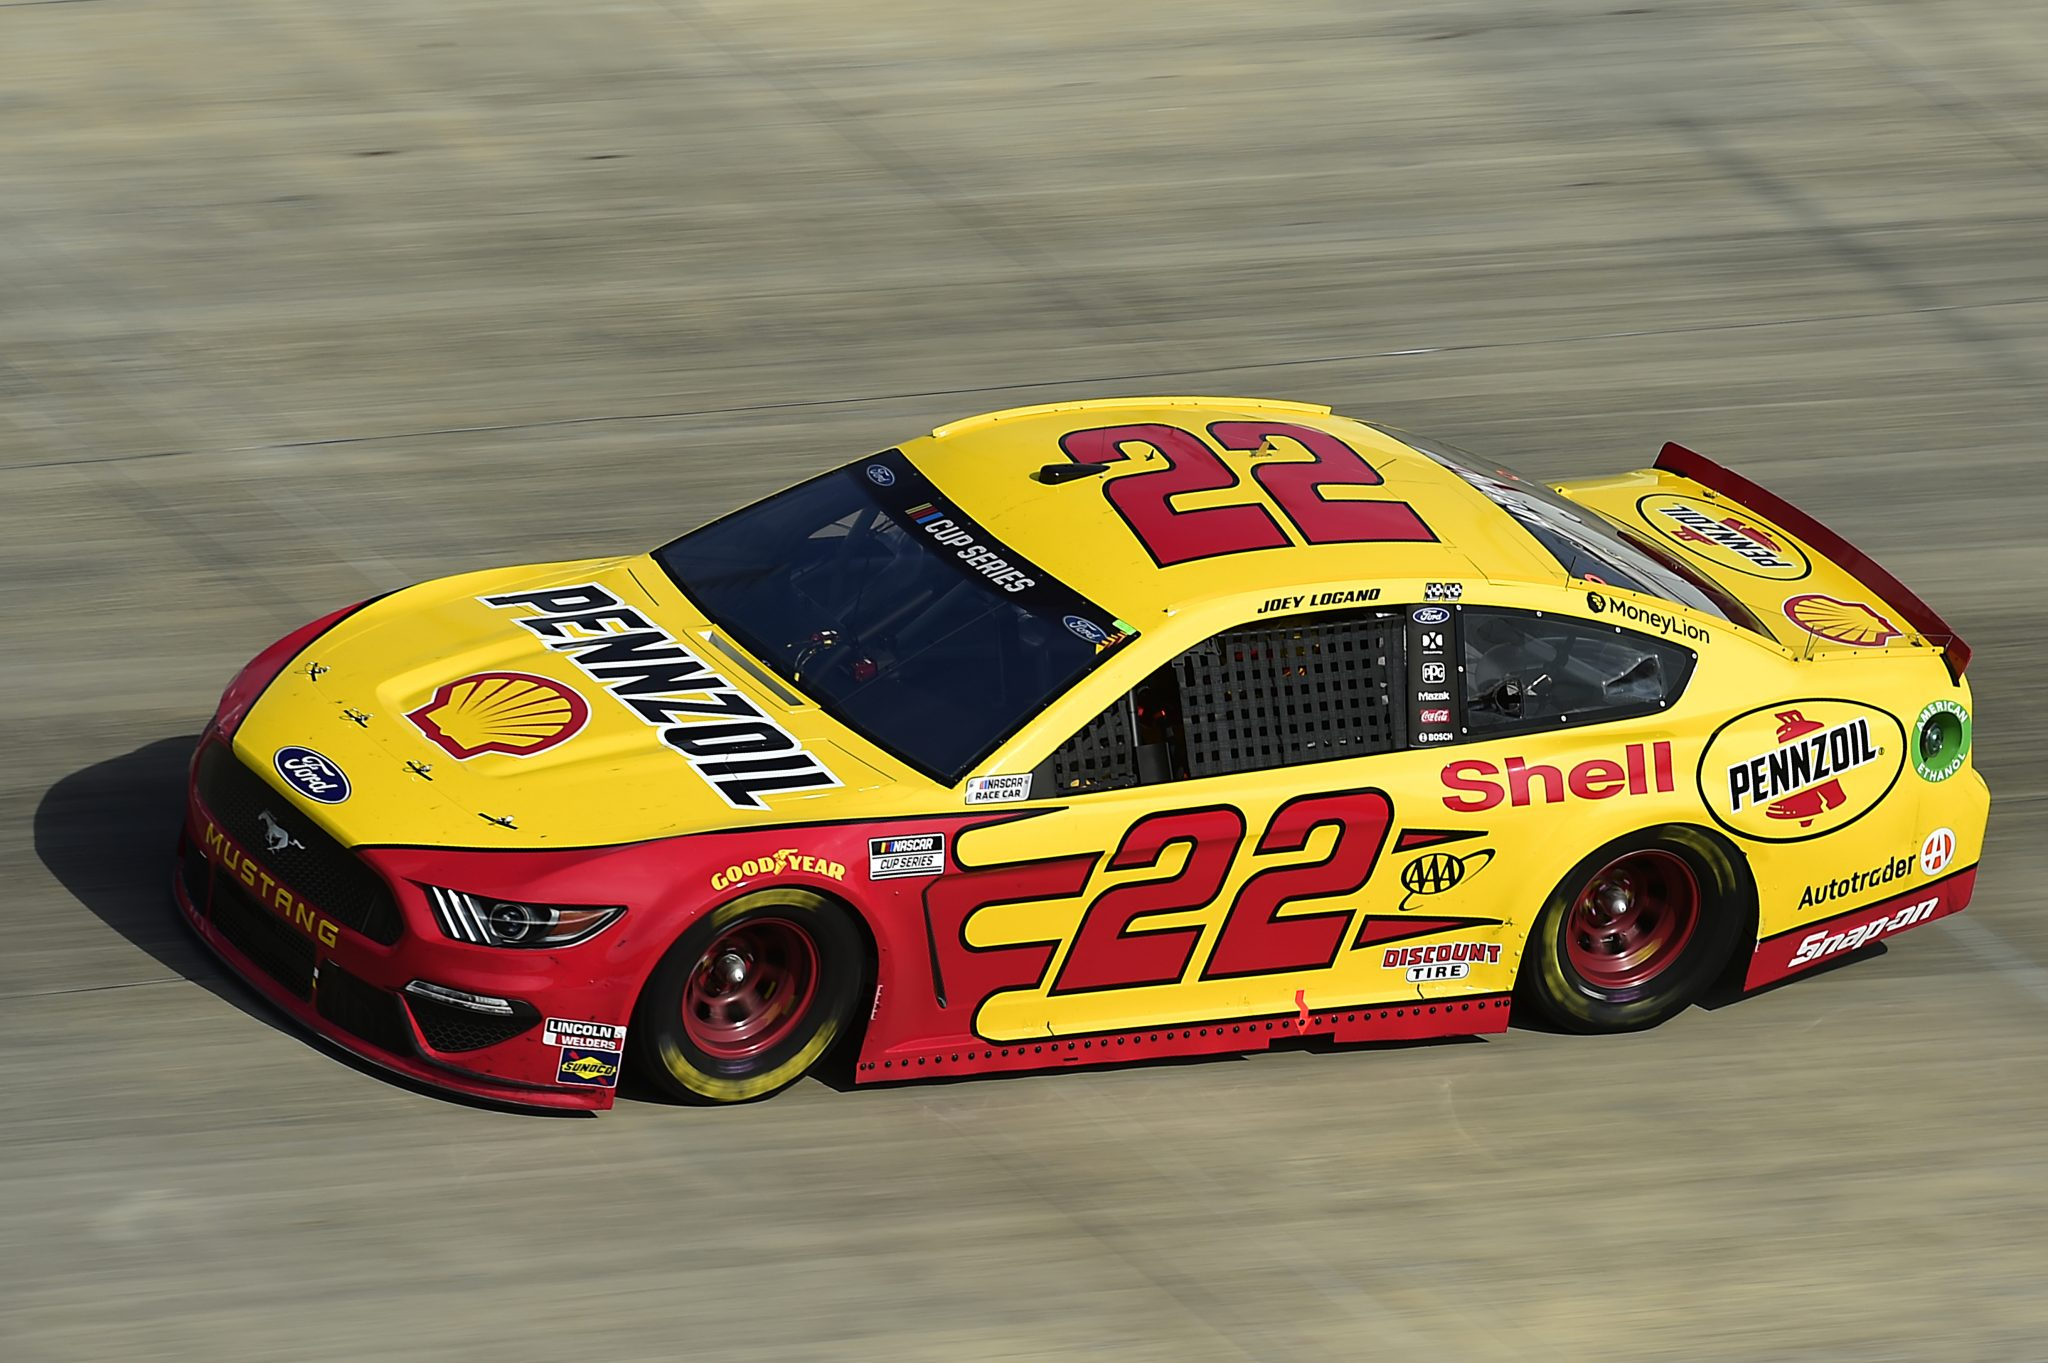 DOVER, DELAWARE - AUGUST 22: Joey Logano, driver of the #22 Shell Pennzoil Ford, drives during the NASCAR Cup Series Drydene 311 at Dover International Speedway on August 22, 2020 in Dover, Delaware. (Photo by Jared C. Tilton/Getty Images) | Getty Images